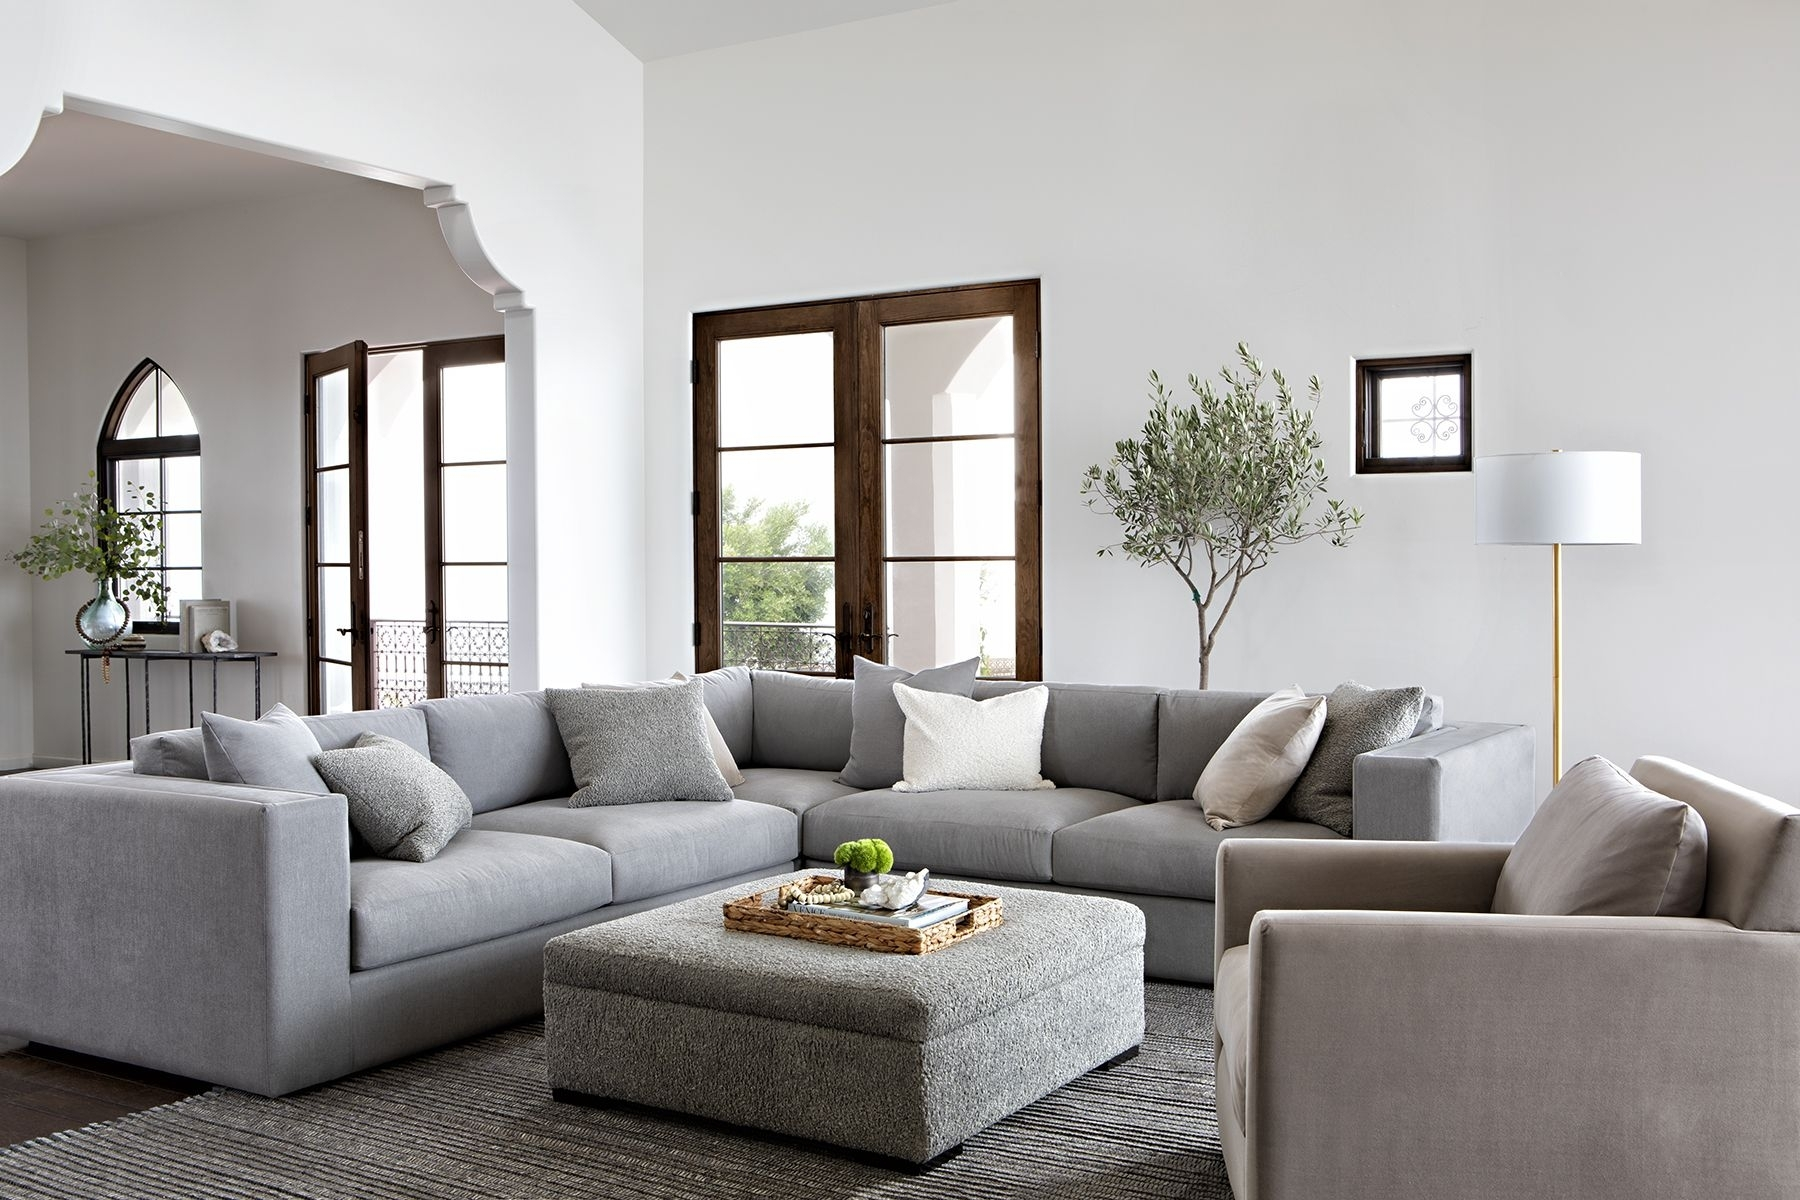 Nate Berkus & Jeremiah Brent's Newest Affordable Collection | Rue With Whitley 3 Piece Sectionals By Nate Berkus And Jeremiah Brent (Photo 4 of 32)